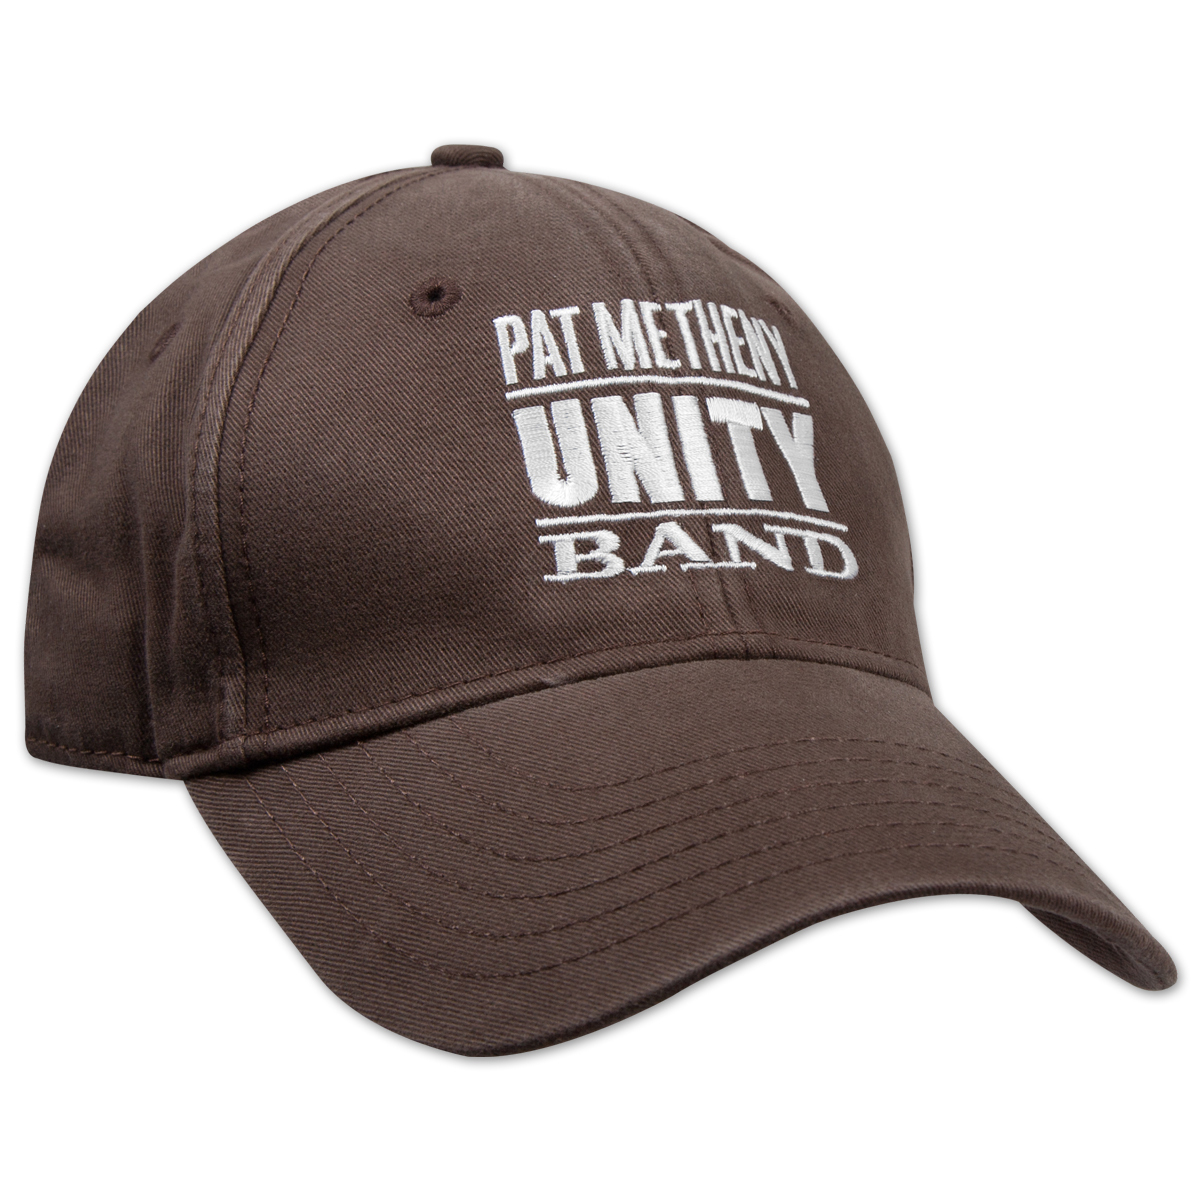 Pat Metheny-Unity Band Brown Hat